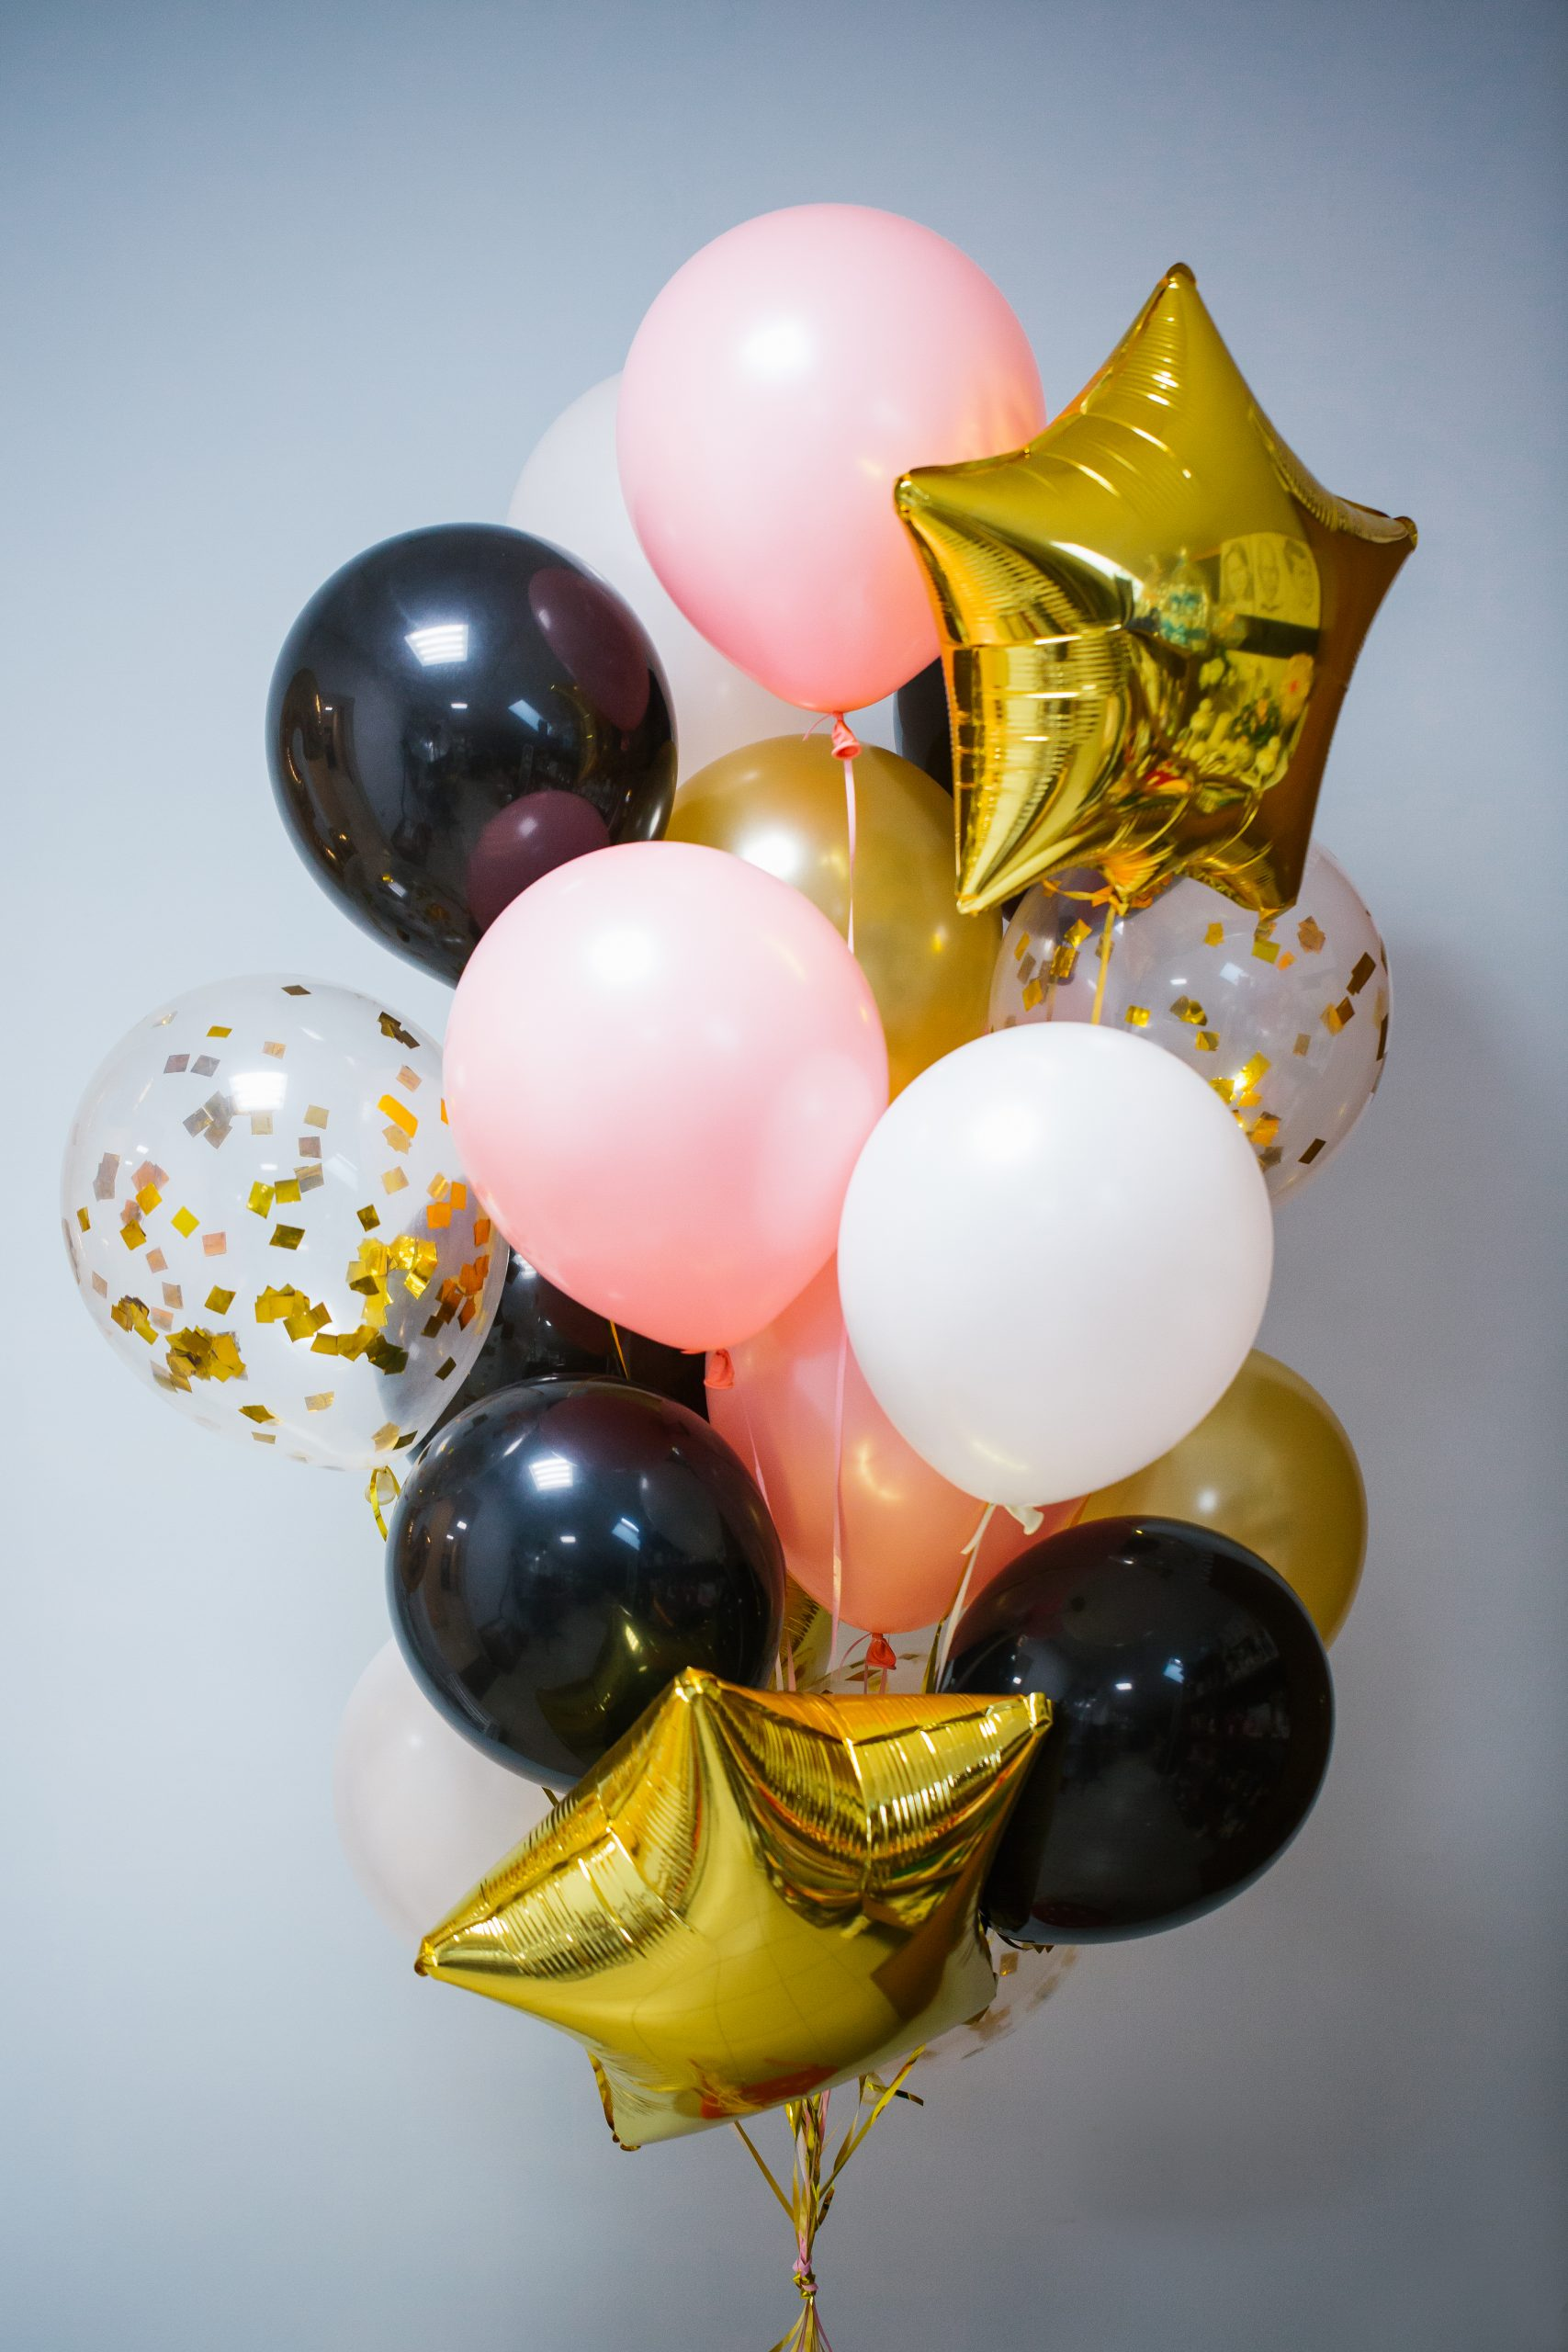 Fountain,Of,Balloons,,Pink,,Gold,,Black